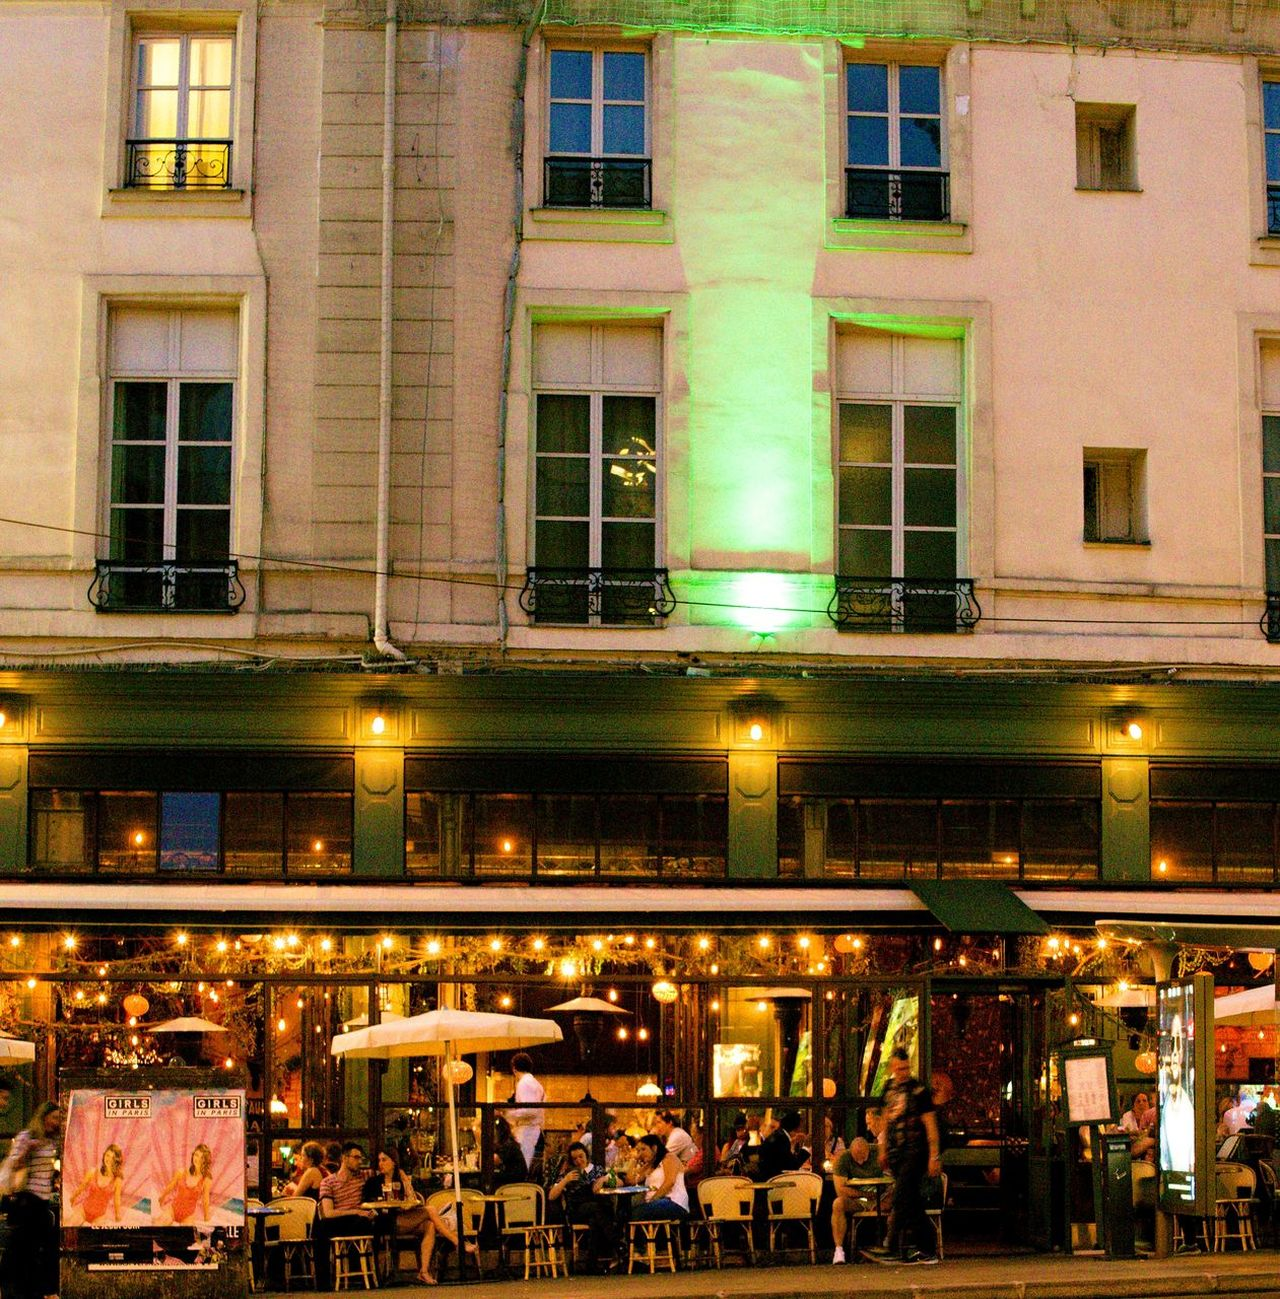 2 Days Ago Architecture Brasserie Building Exterior Built Structure City Grands Boulevards Illuminated Large Group Of People Men Neon Night Night In Paris Outdoors People Real People Relaxing Time Store Streetphotography Window